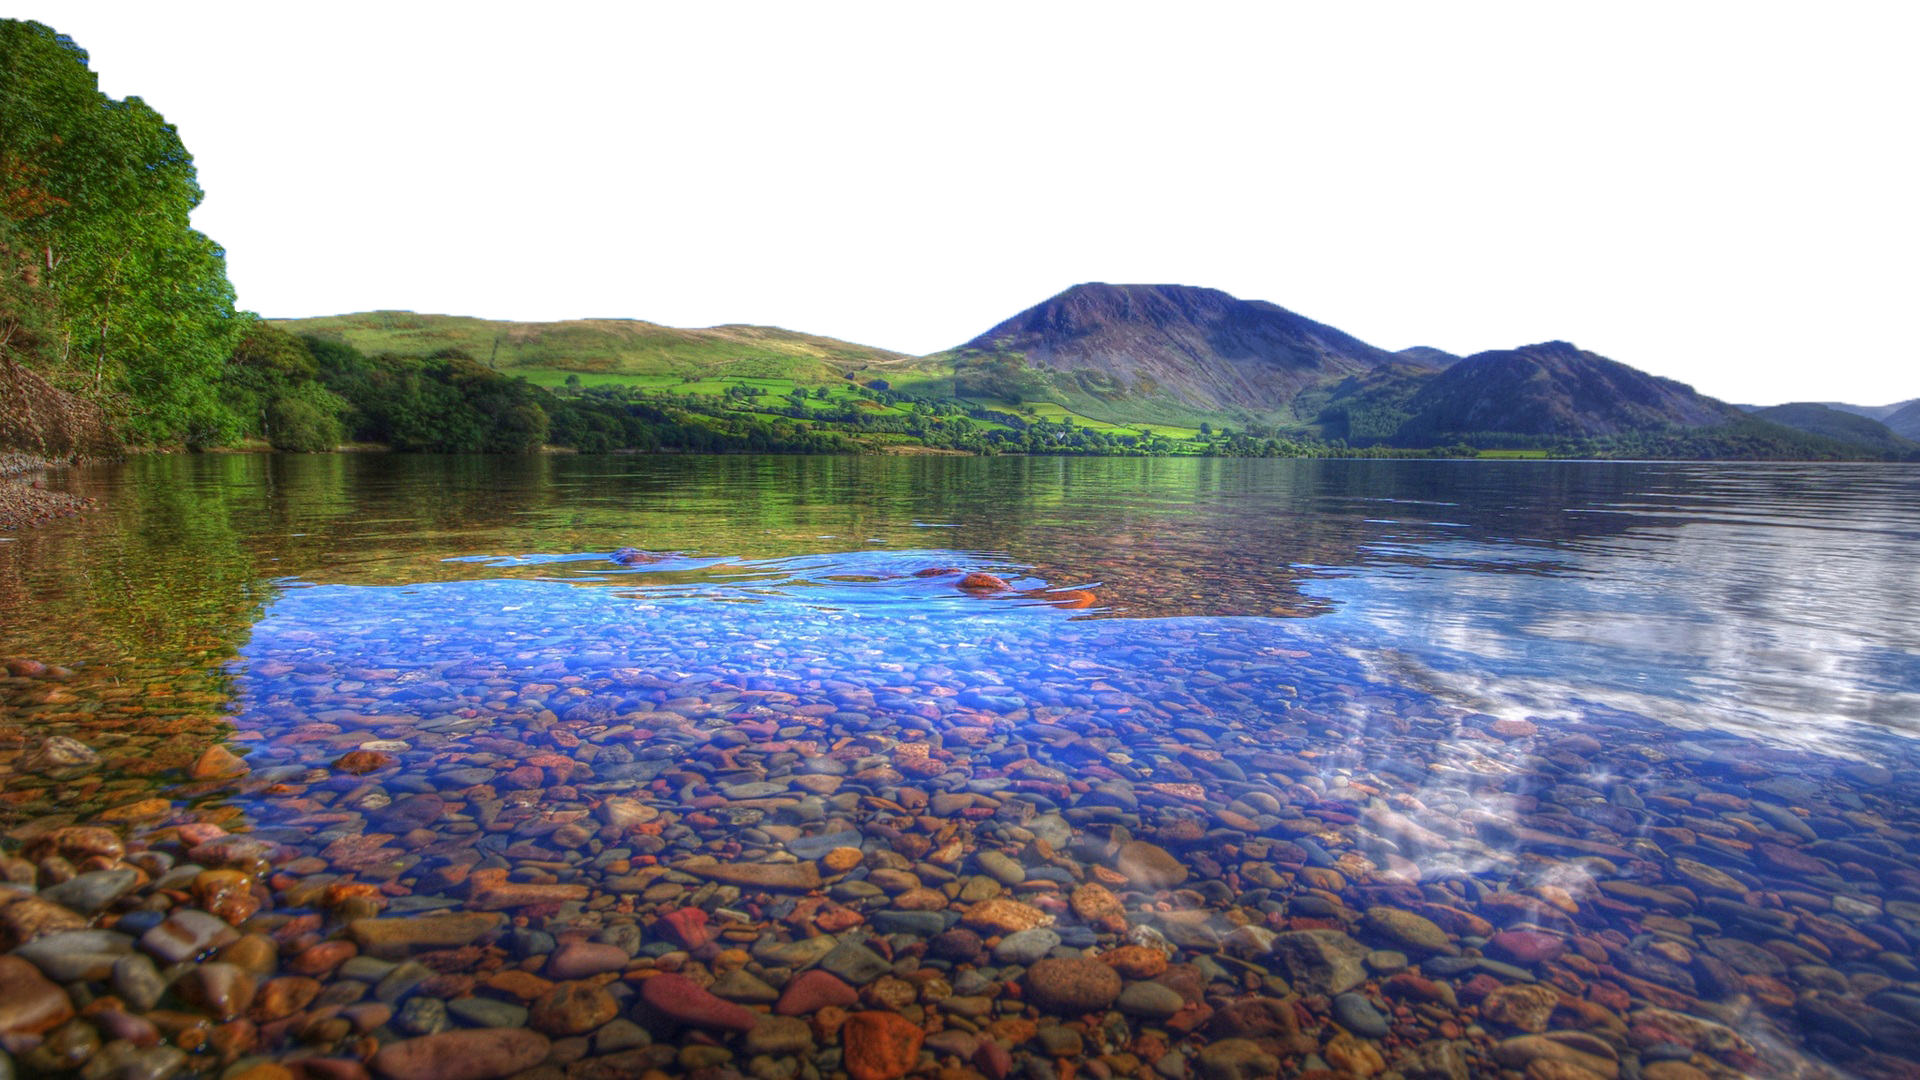 Transparent lake clear water. Natural landscape photography nature